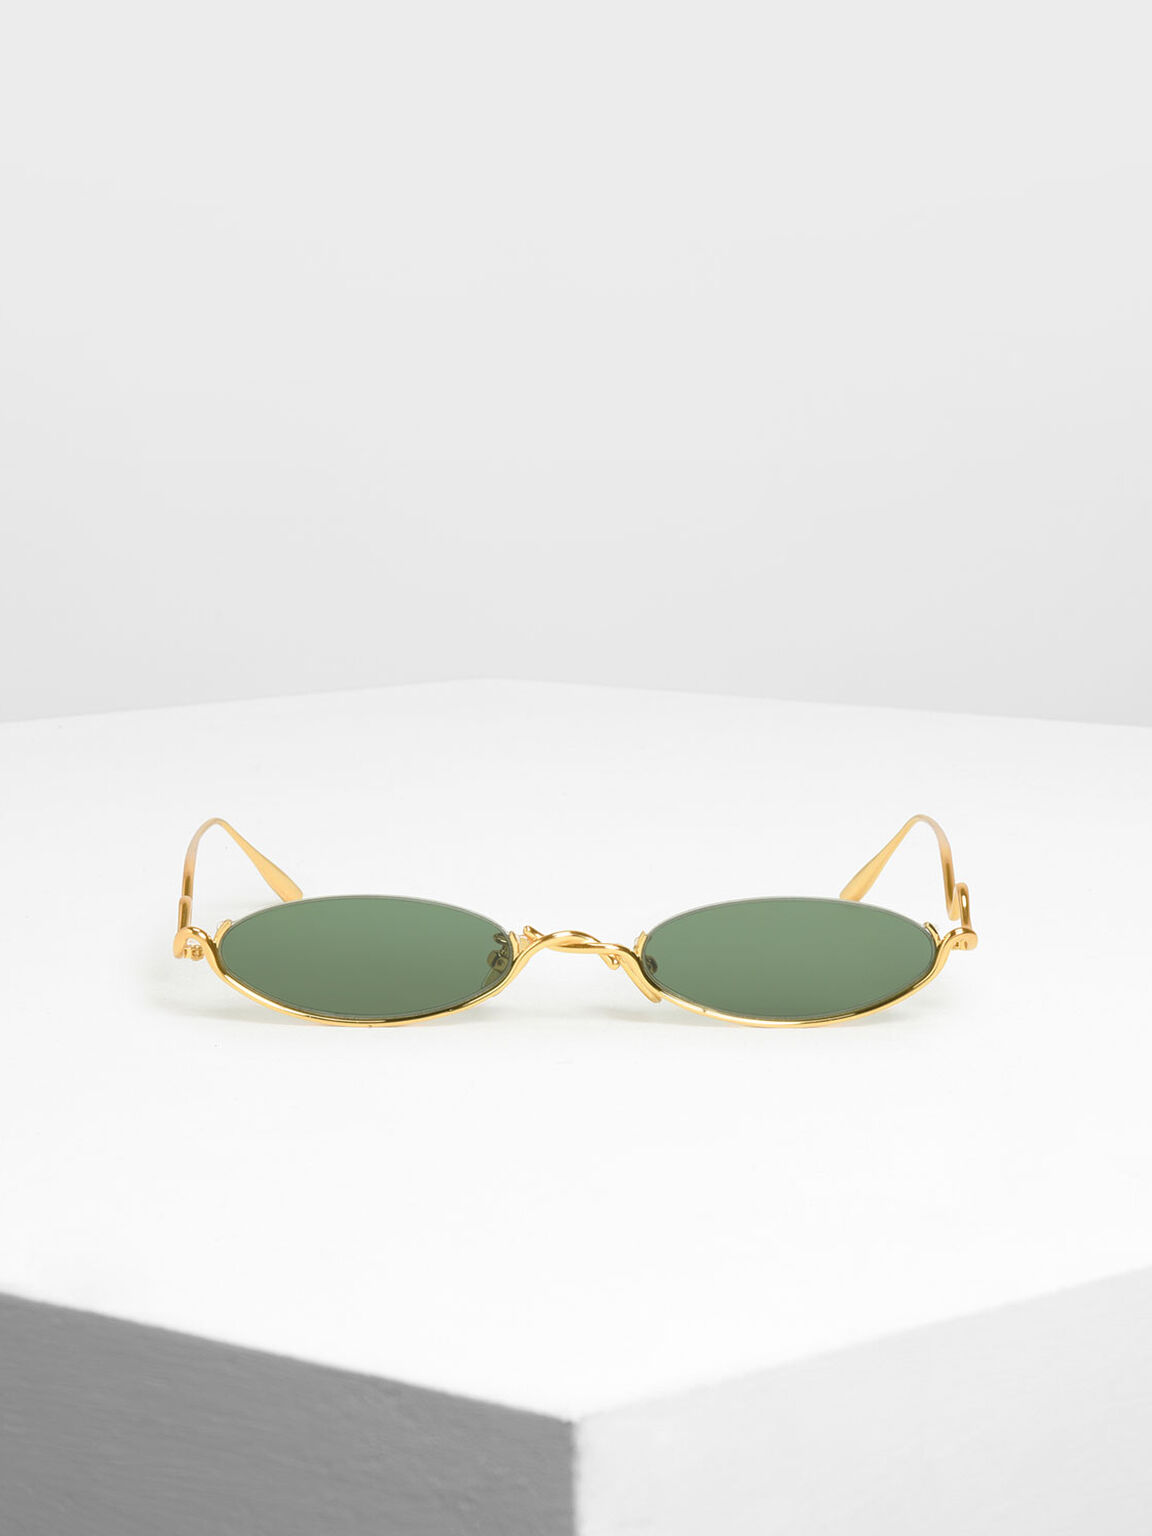 Wire Frame Oval Sunglasses, Gold, hi-res